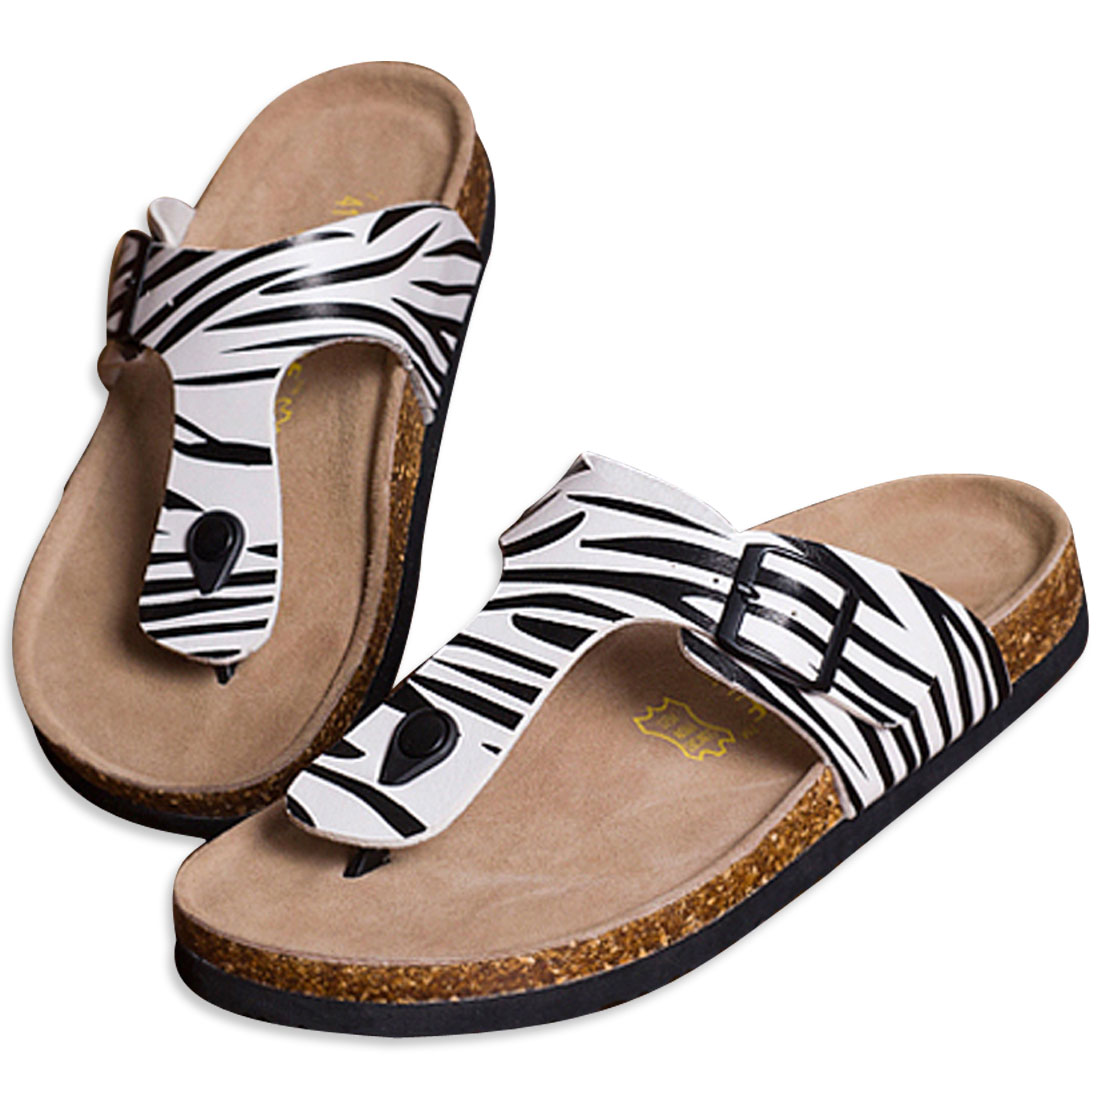 Men Completely Flexible Strap Black White 10 US Size Summer Sandal